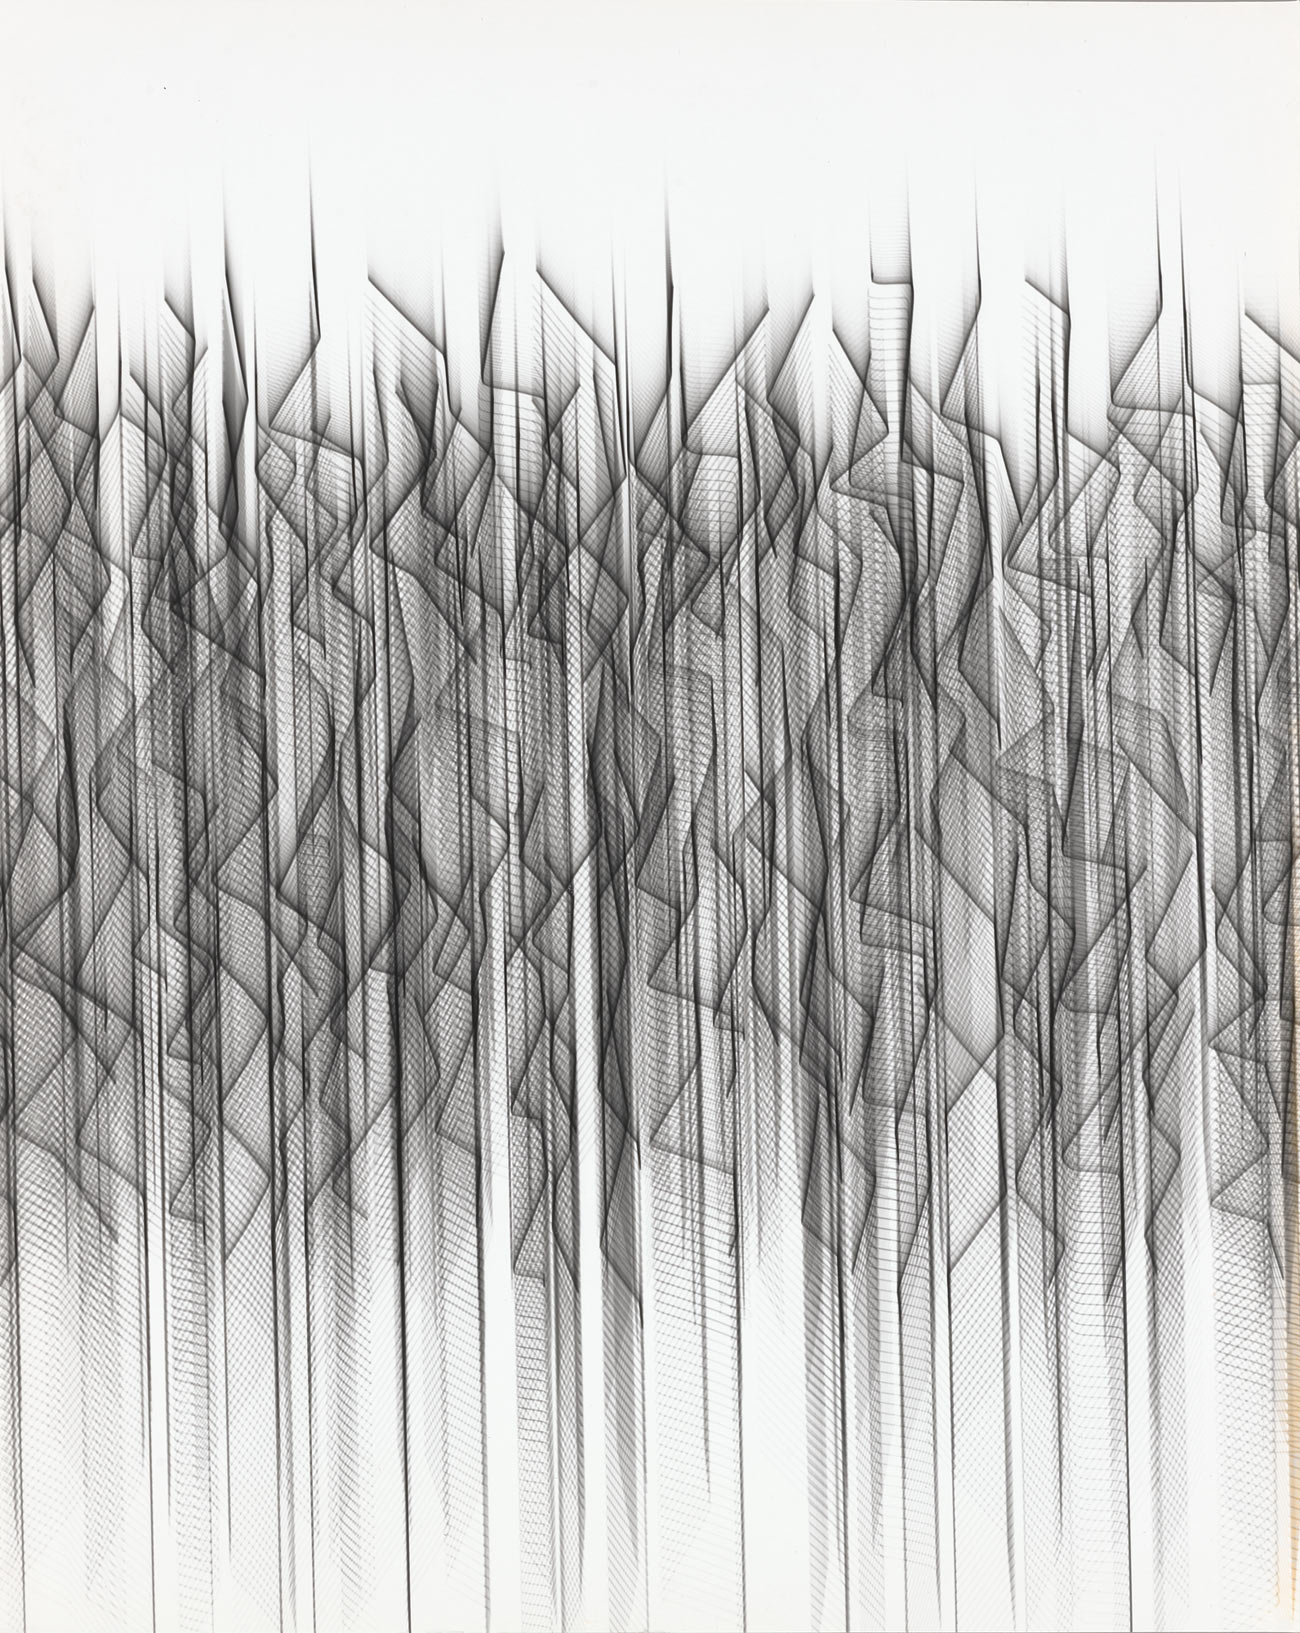 Black and white abstract of squiggly vertical lines